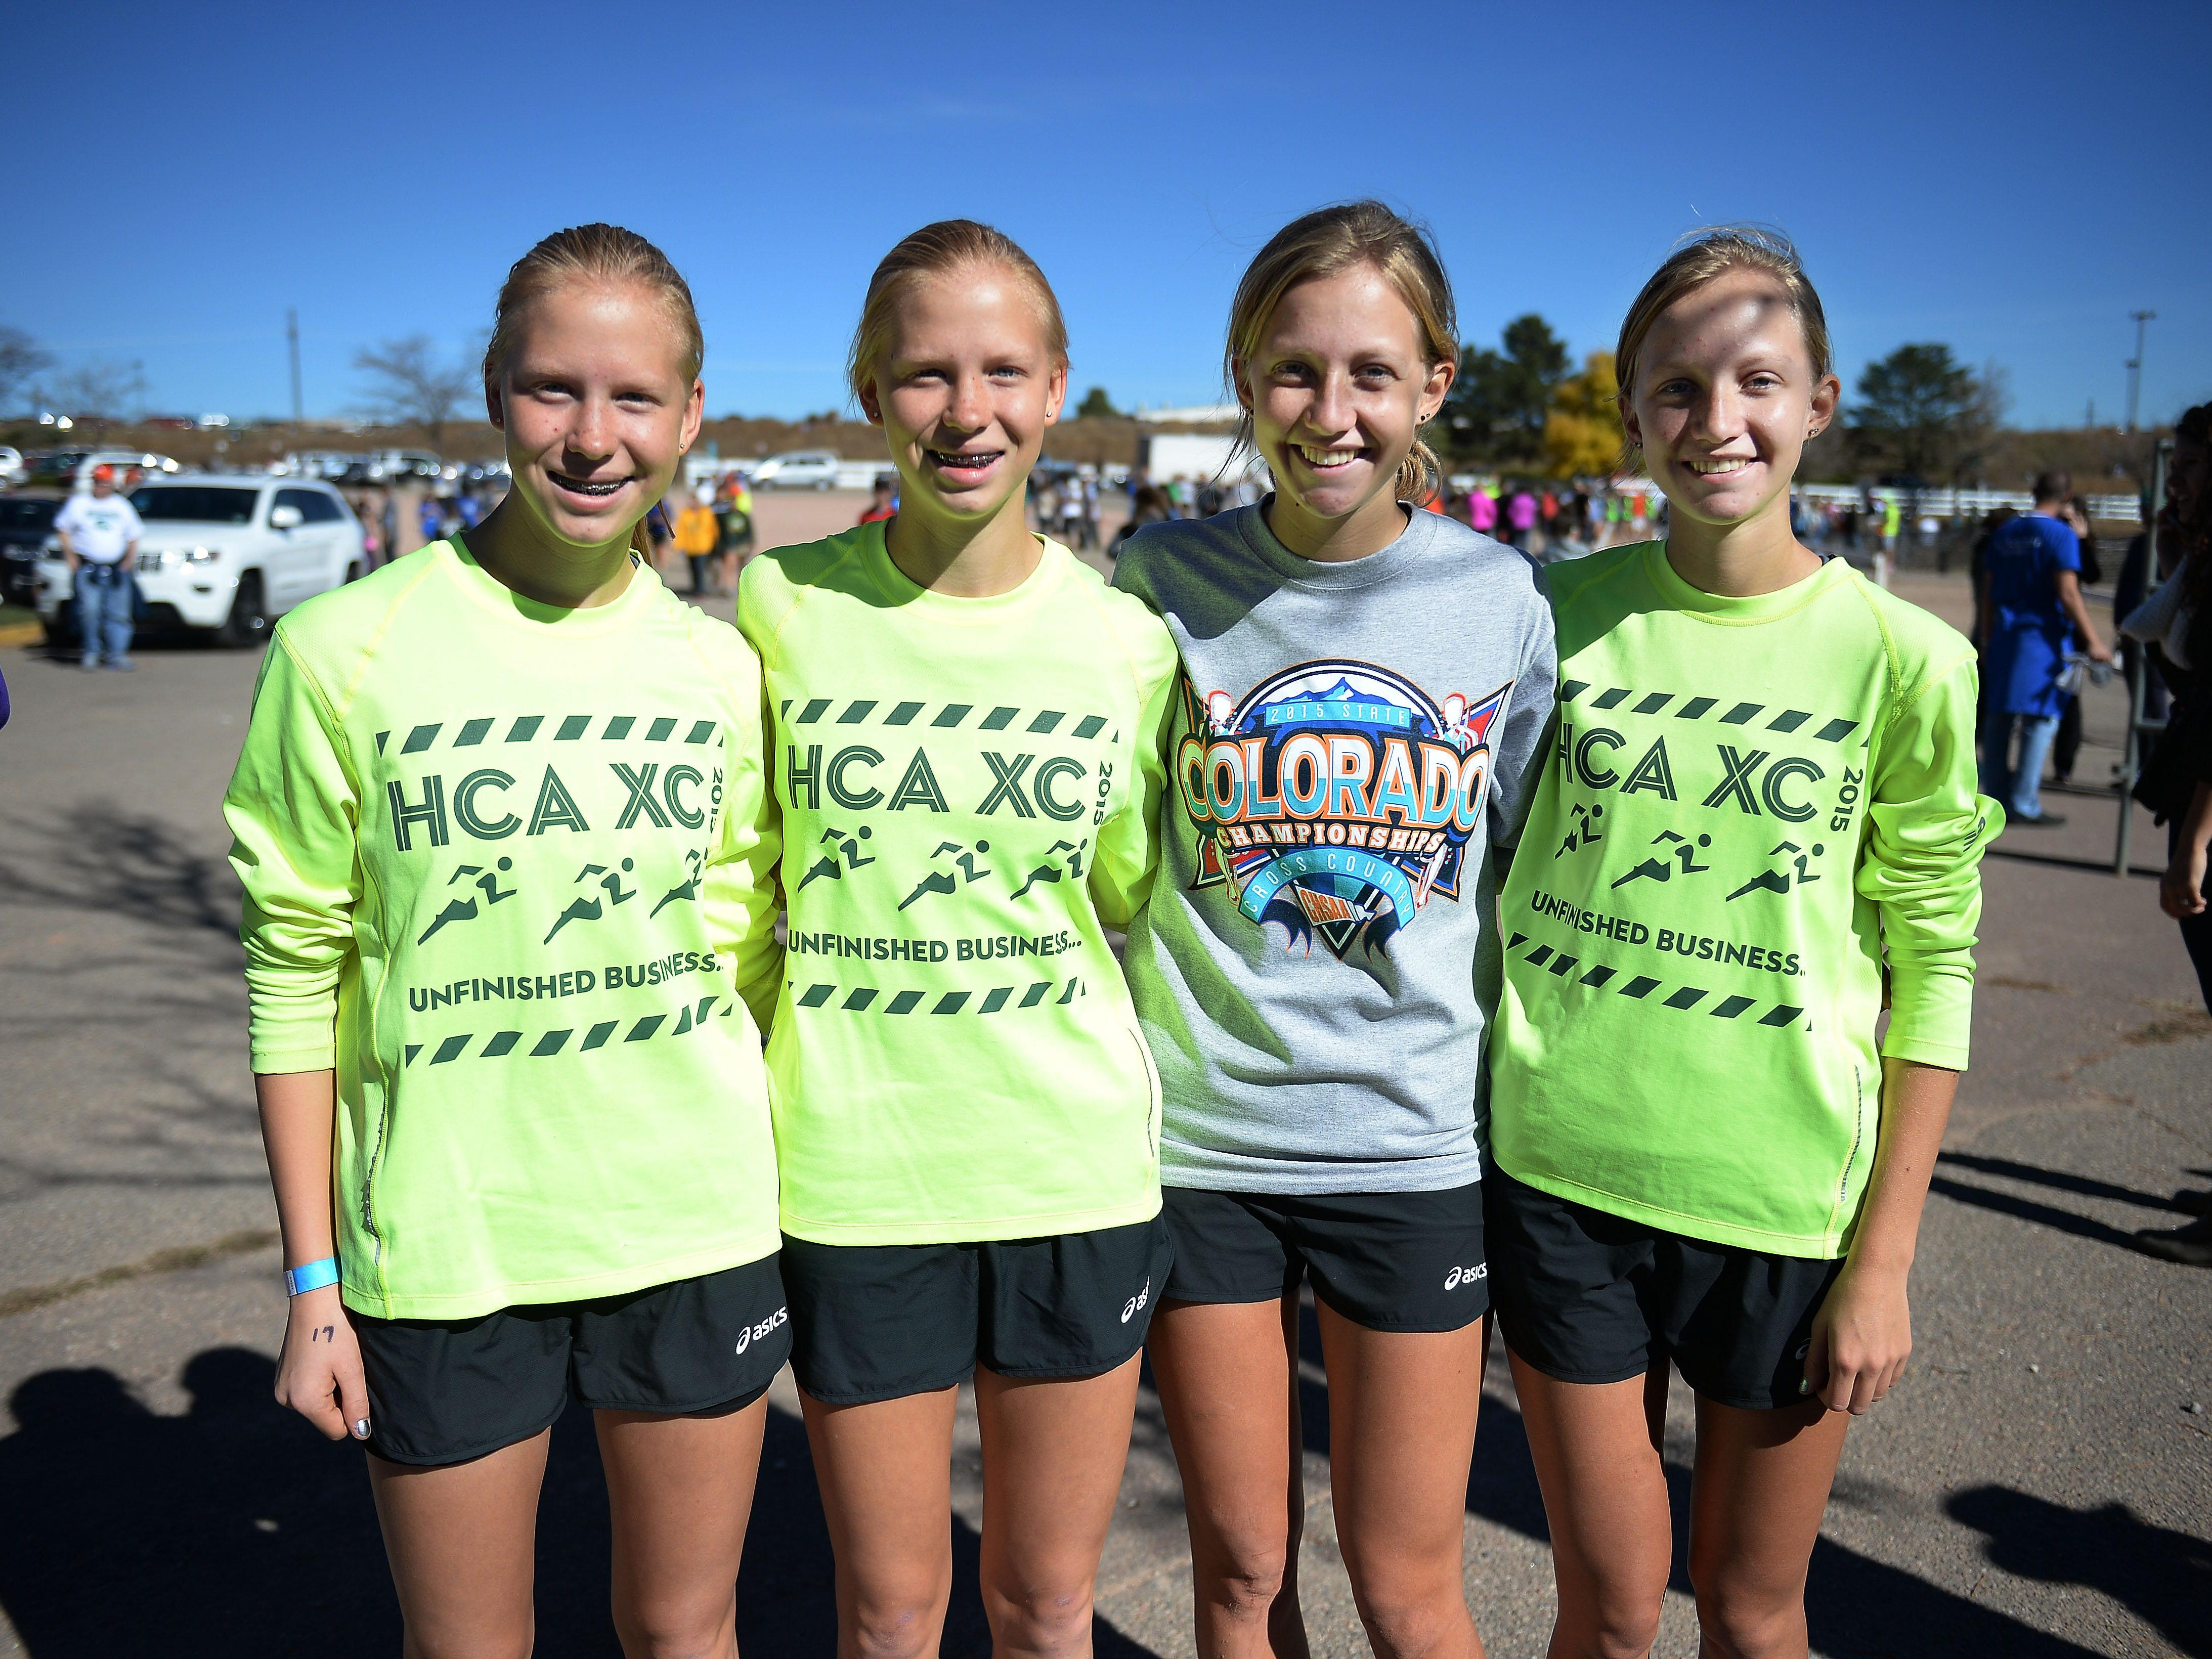 Heritage Christian runners Leeann Wagner, from left, Megan Wagner, Rebekah Rairdon and Rachel Rairdon pose for a portrait at the Colorado State Cross County Championship at Norris-Penrose Event Center in Colorado Springs on Saturday. Rachel Rairdon won the Class 2A title, with Rebekah second. The Eagles finished second as a team.